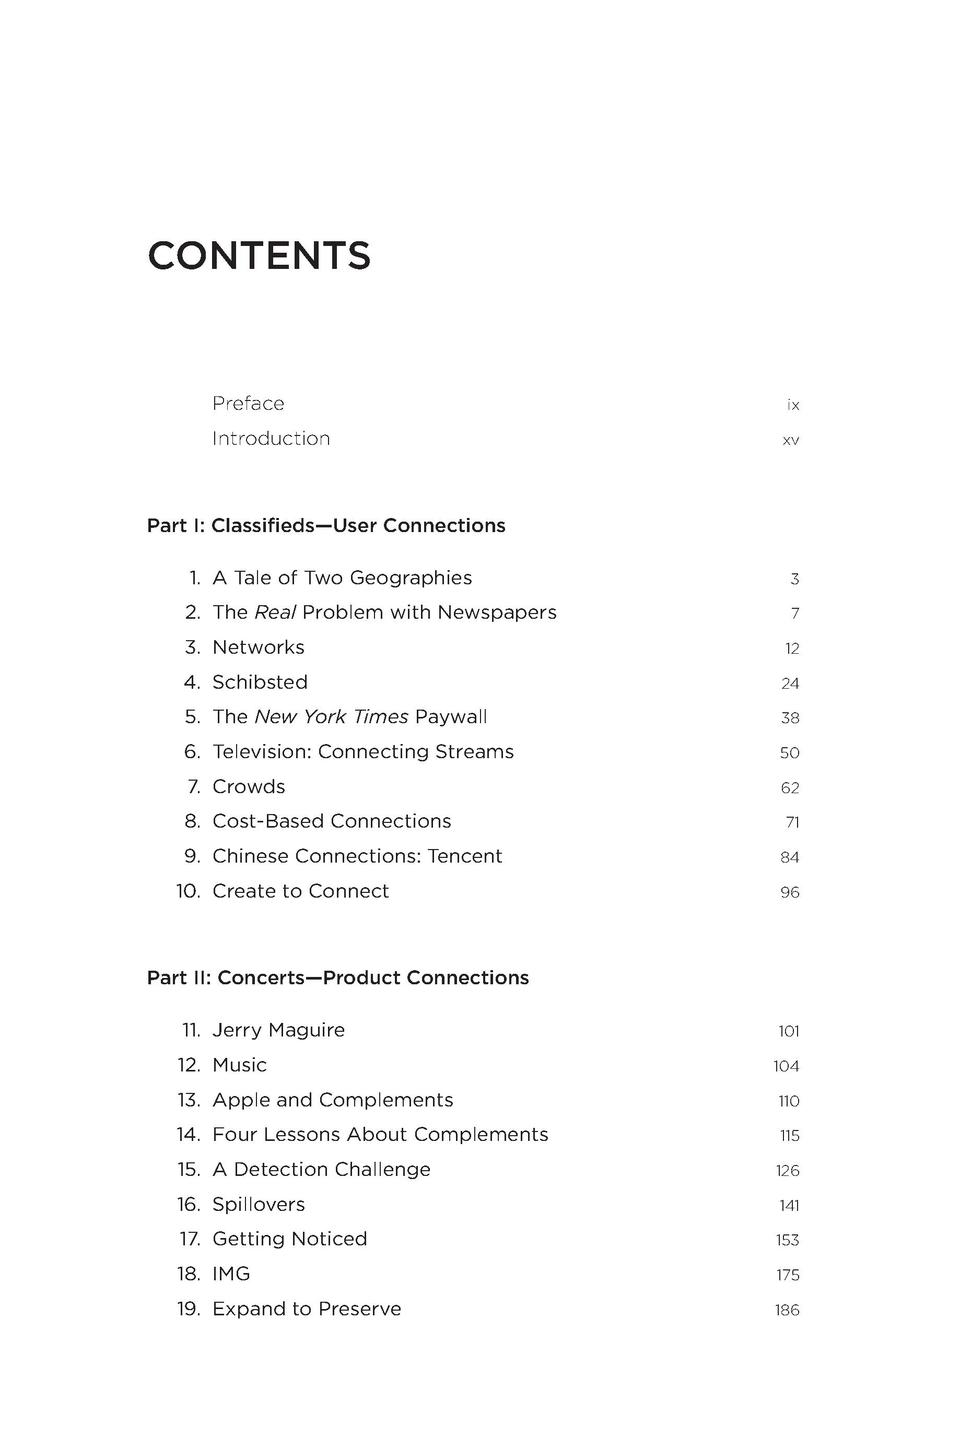 CONTENTS  Preface Introduction  ix xv  Part I  Classifieds   User Connections 1. A Tale of Two Geographies 2. The Real Pro...